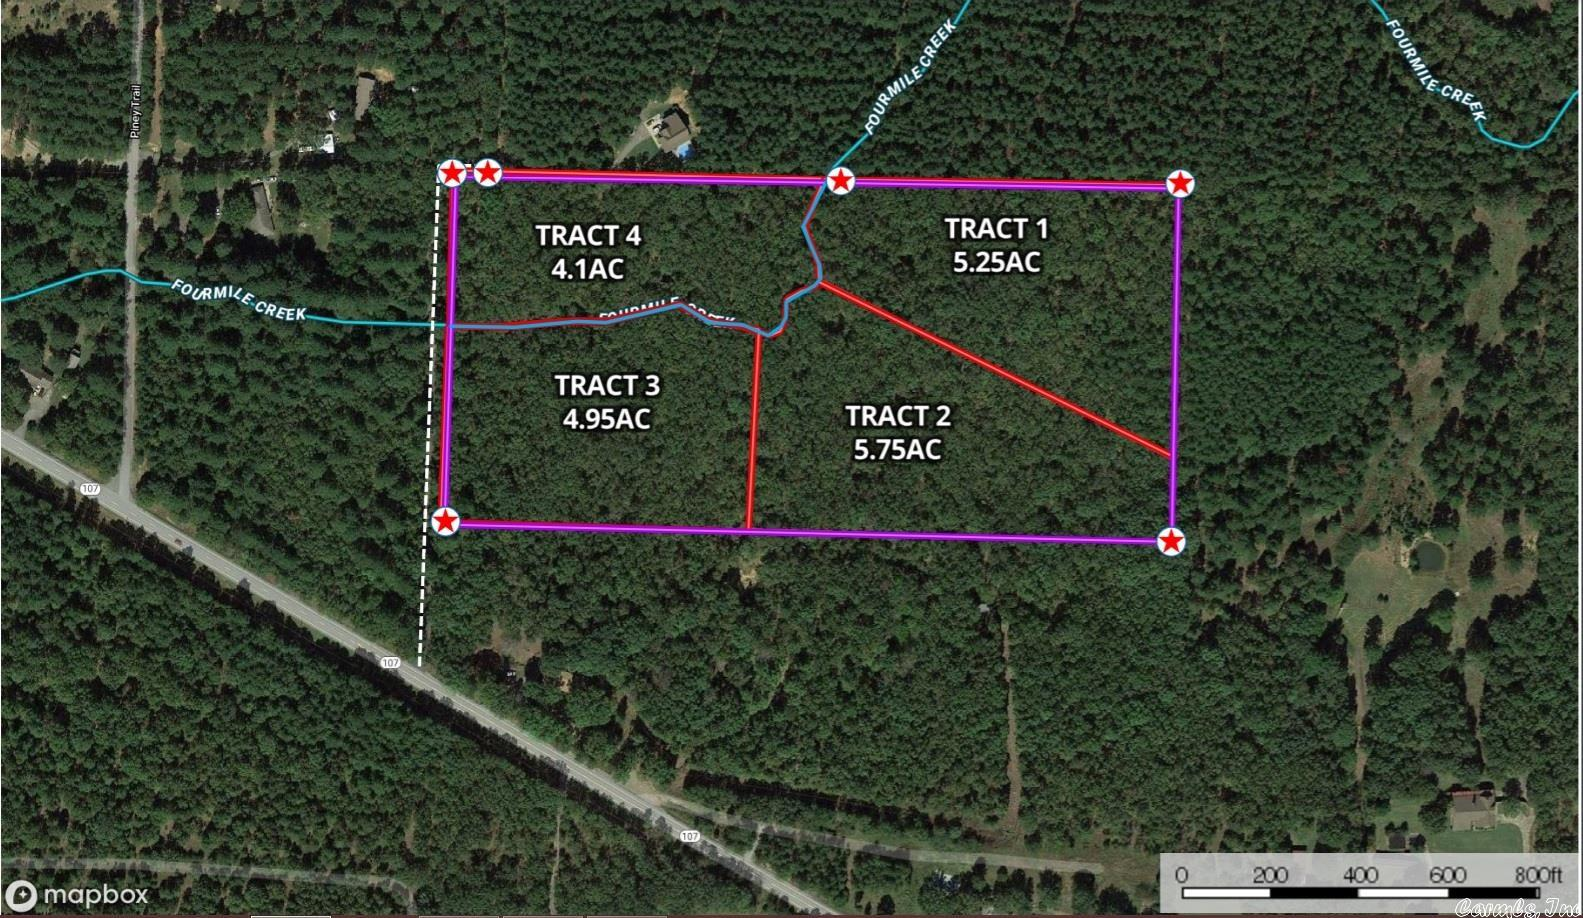 Privacy, peace, and seclusion at its finest in a property with convenient location! Covered in mature hardwood trees, seasonal creek runs through it. The land lays well, with good contour/drainage, fully buildable. Approximately 10 minutes: Cabot/Vilonia/LRAFB, &under 15min to Sherwood. Situated off of the road, and accessed via private drive. Utilities are along Hwy 107 including Entergy, water & buyer to put in septic. Willing to divide-minimum of 5 acres, subject to Seller's approval of Buyer's proposal.